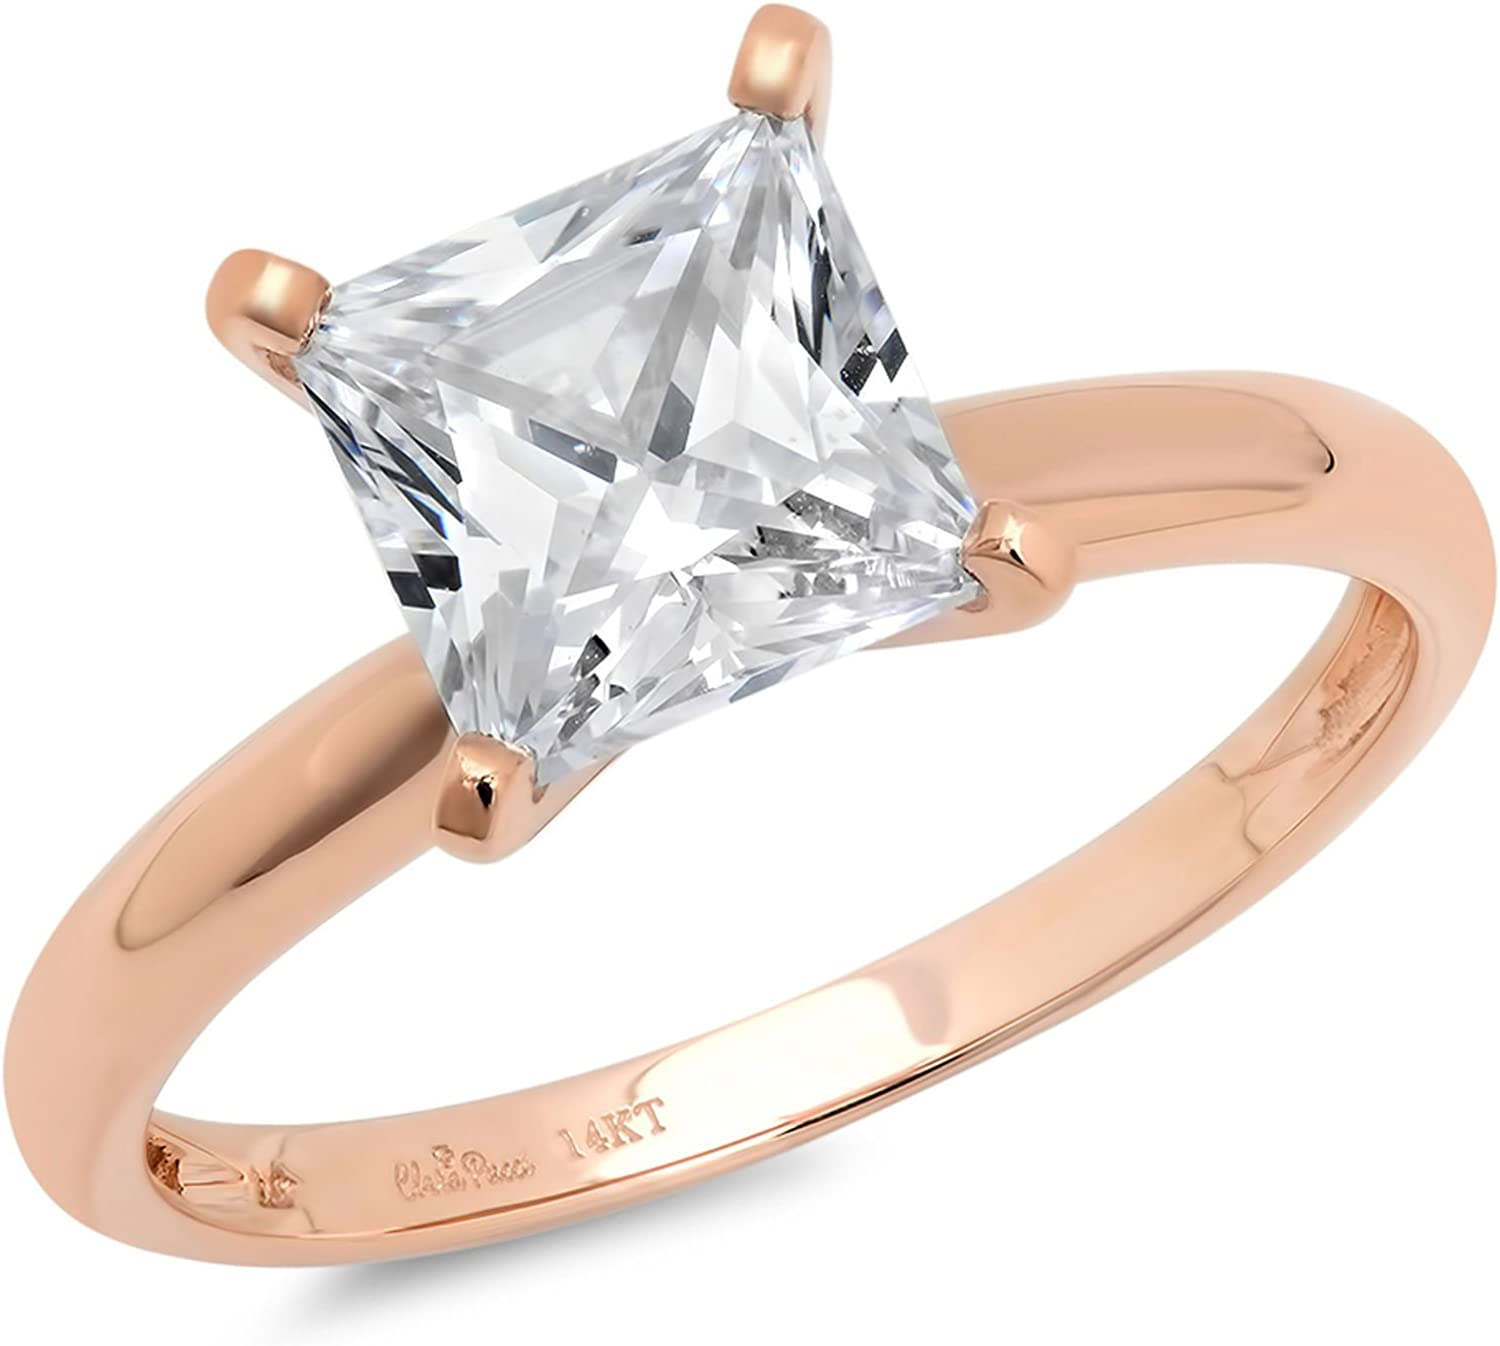 14k Rose Gold 1.97cttw Classic Princess Cut Solitaire Moissanite Engagement Promise Ring Statement Anniversary Bridal Wedding by Clara Pucci